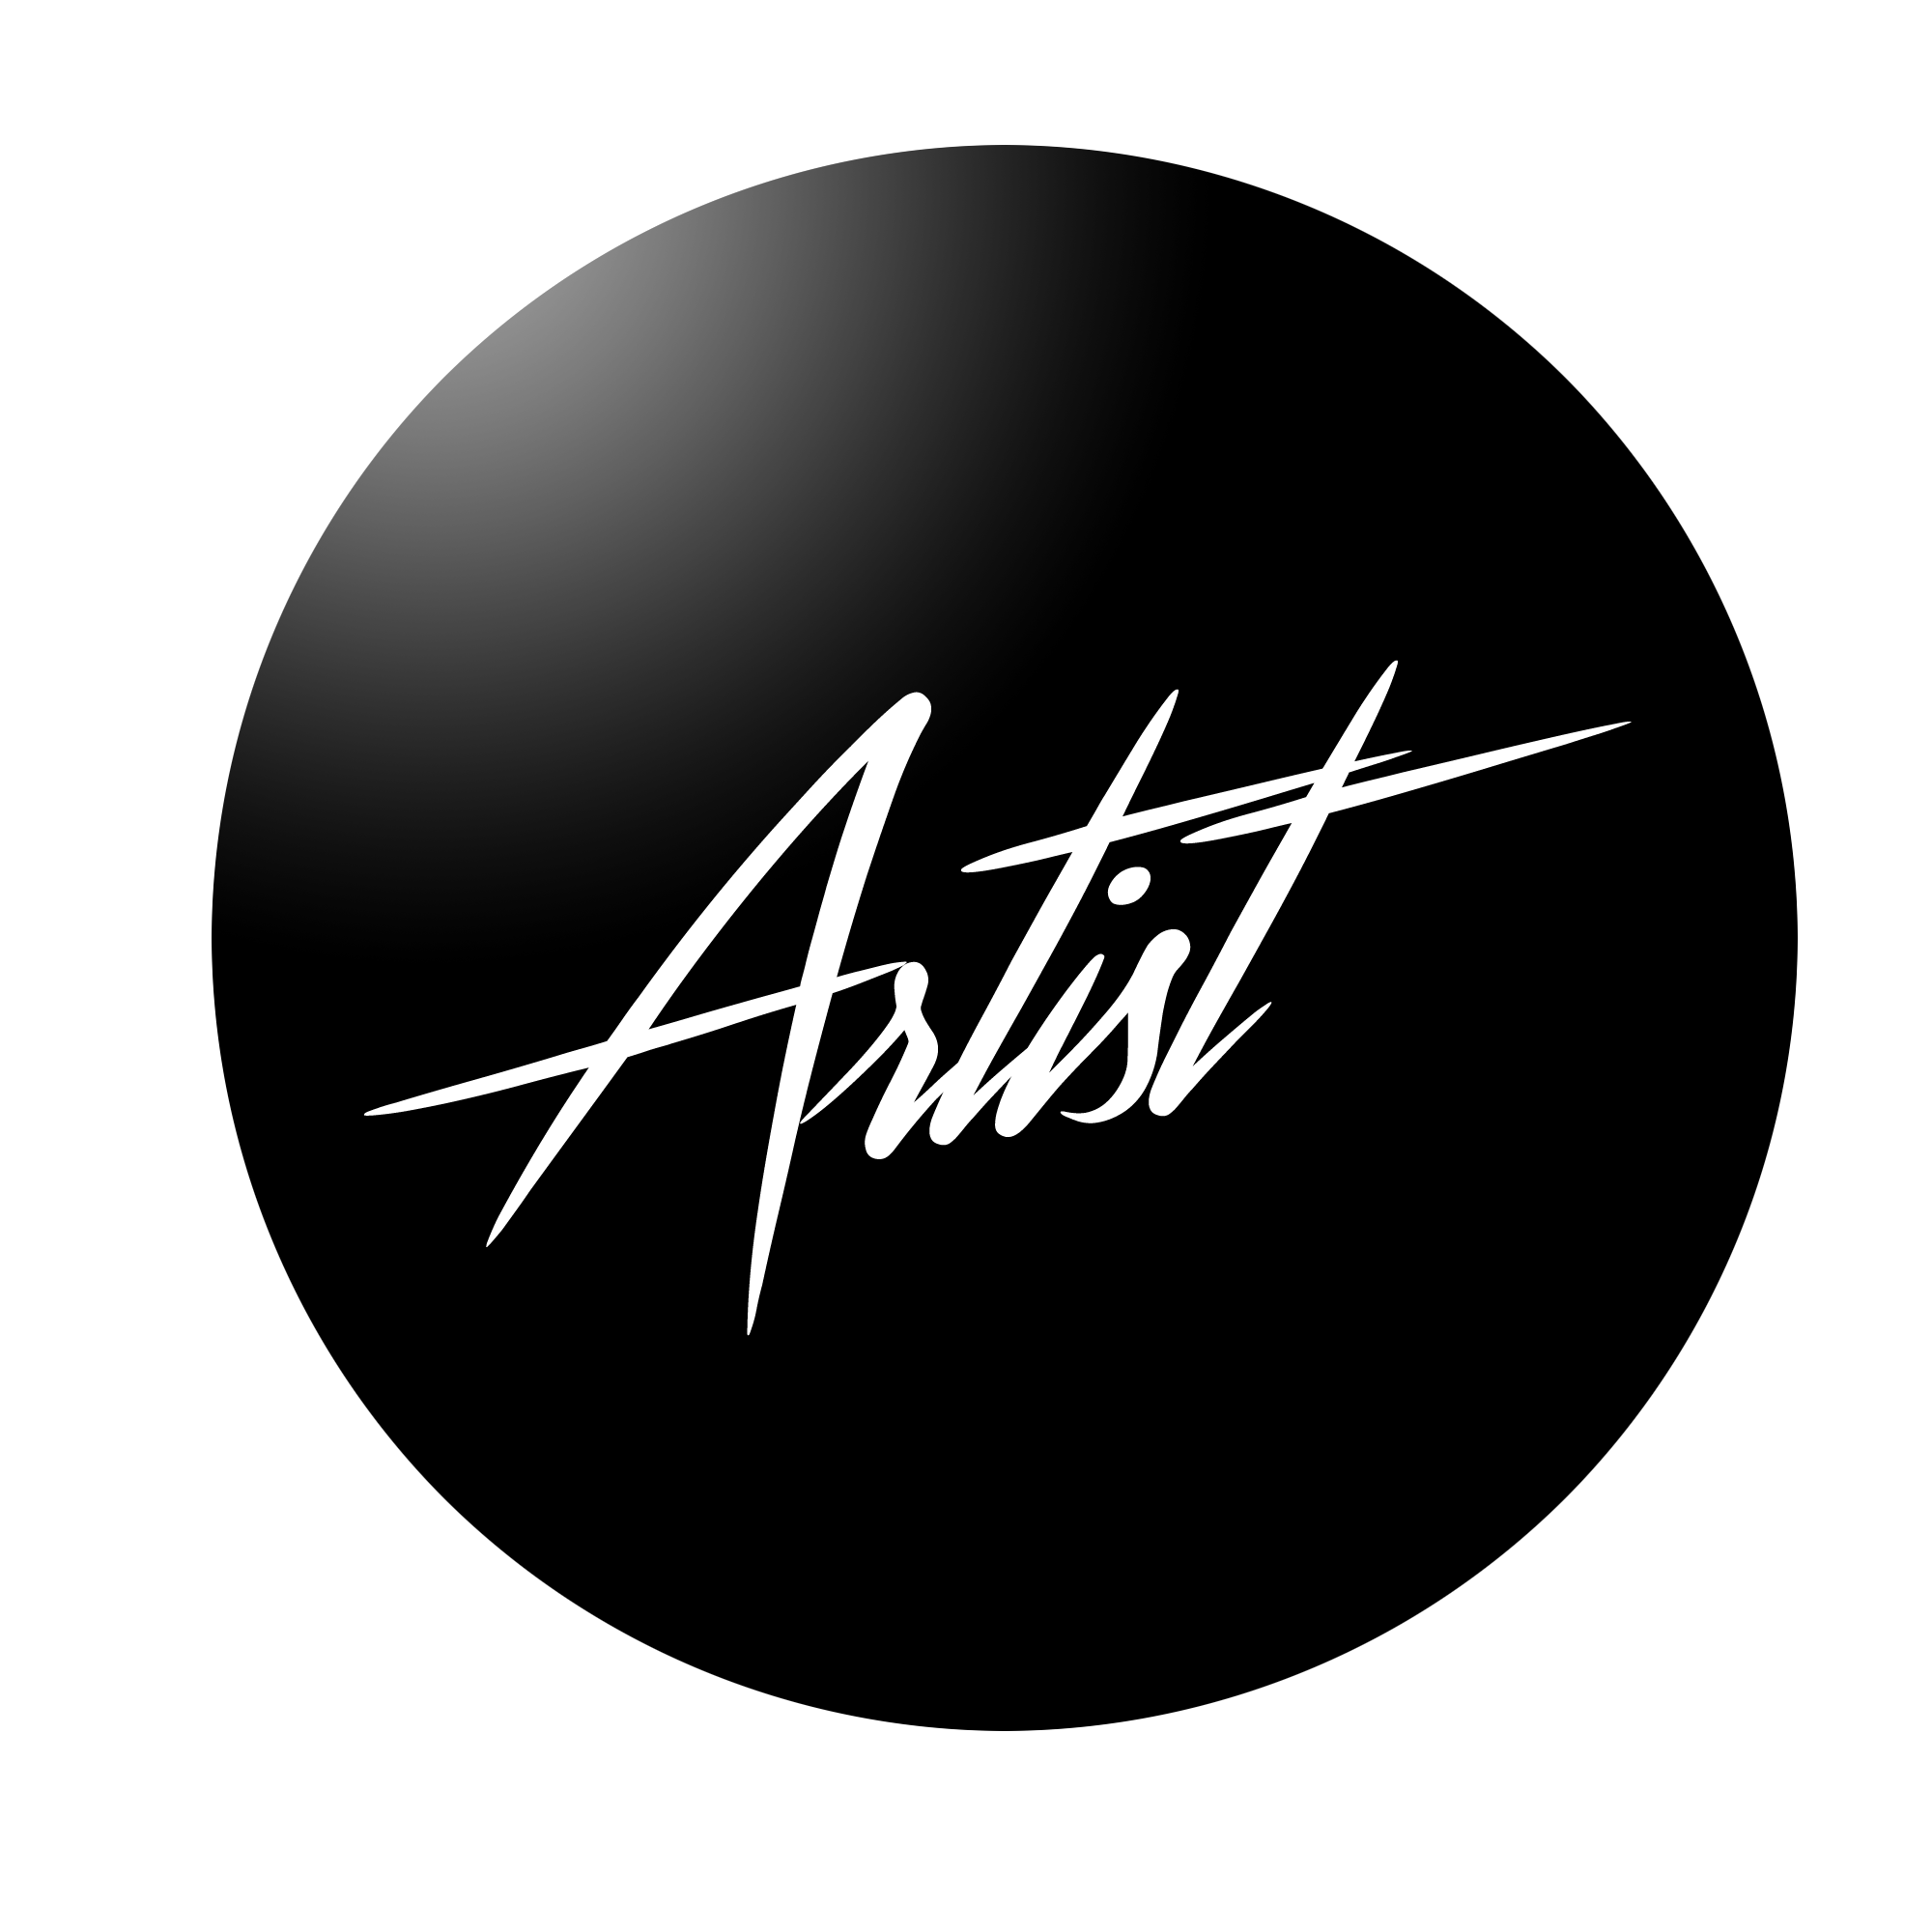 Artist Learning program - the most popular microblading training in Europe. More than 3000 students have graduated from Artist programs (The Artist, Artist 2.0 and now Artist 3.0 programs).